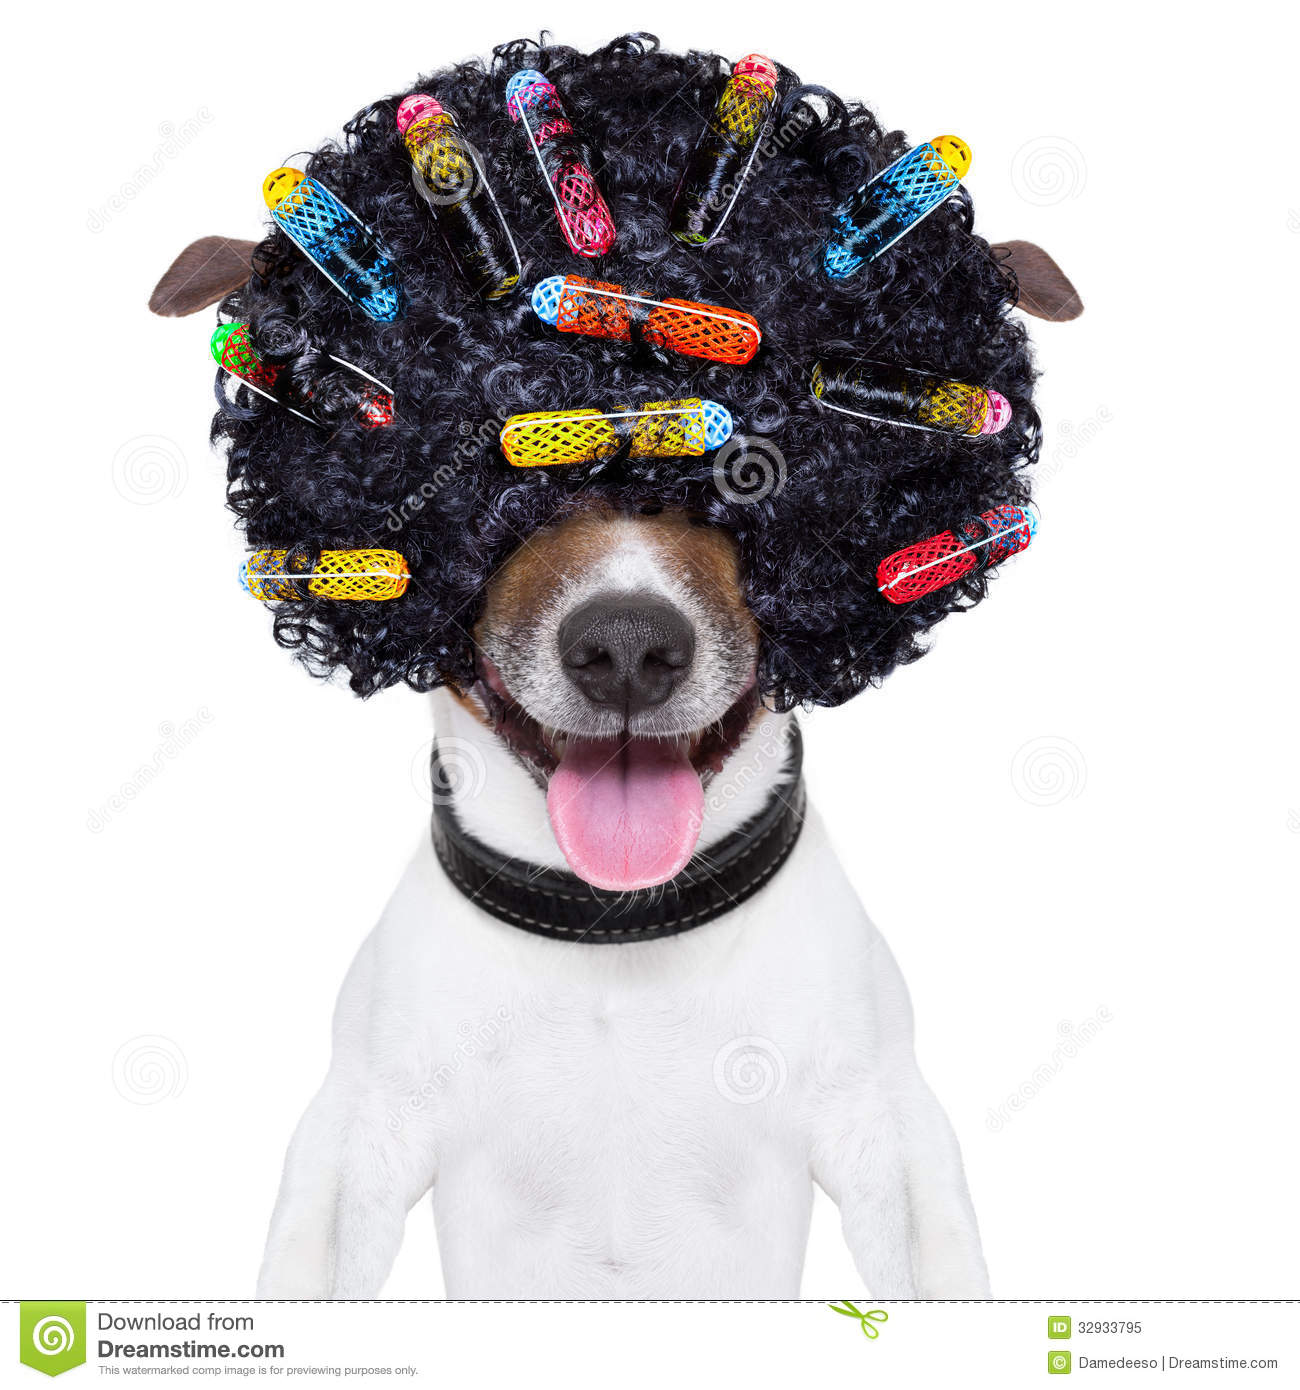 Crazy Curly Hair Dog Stock Image. Image Of Hairstyle